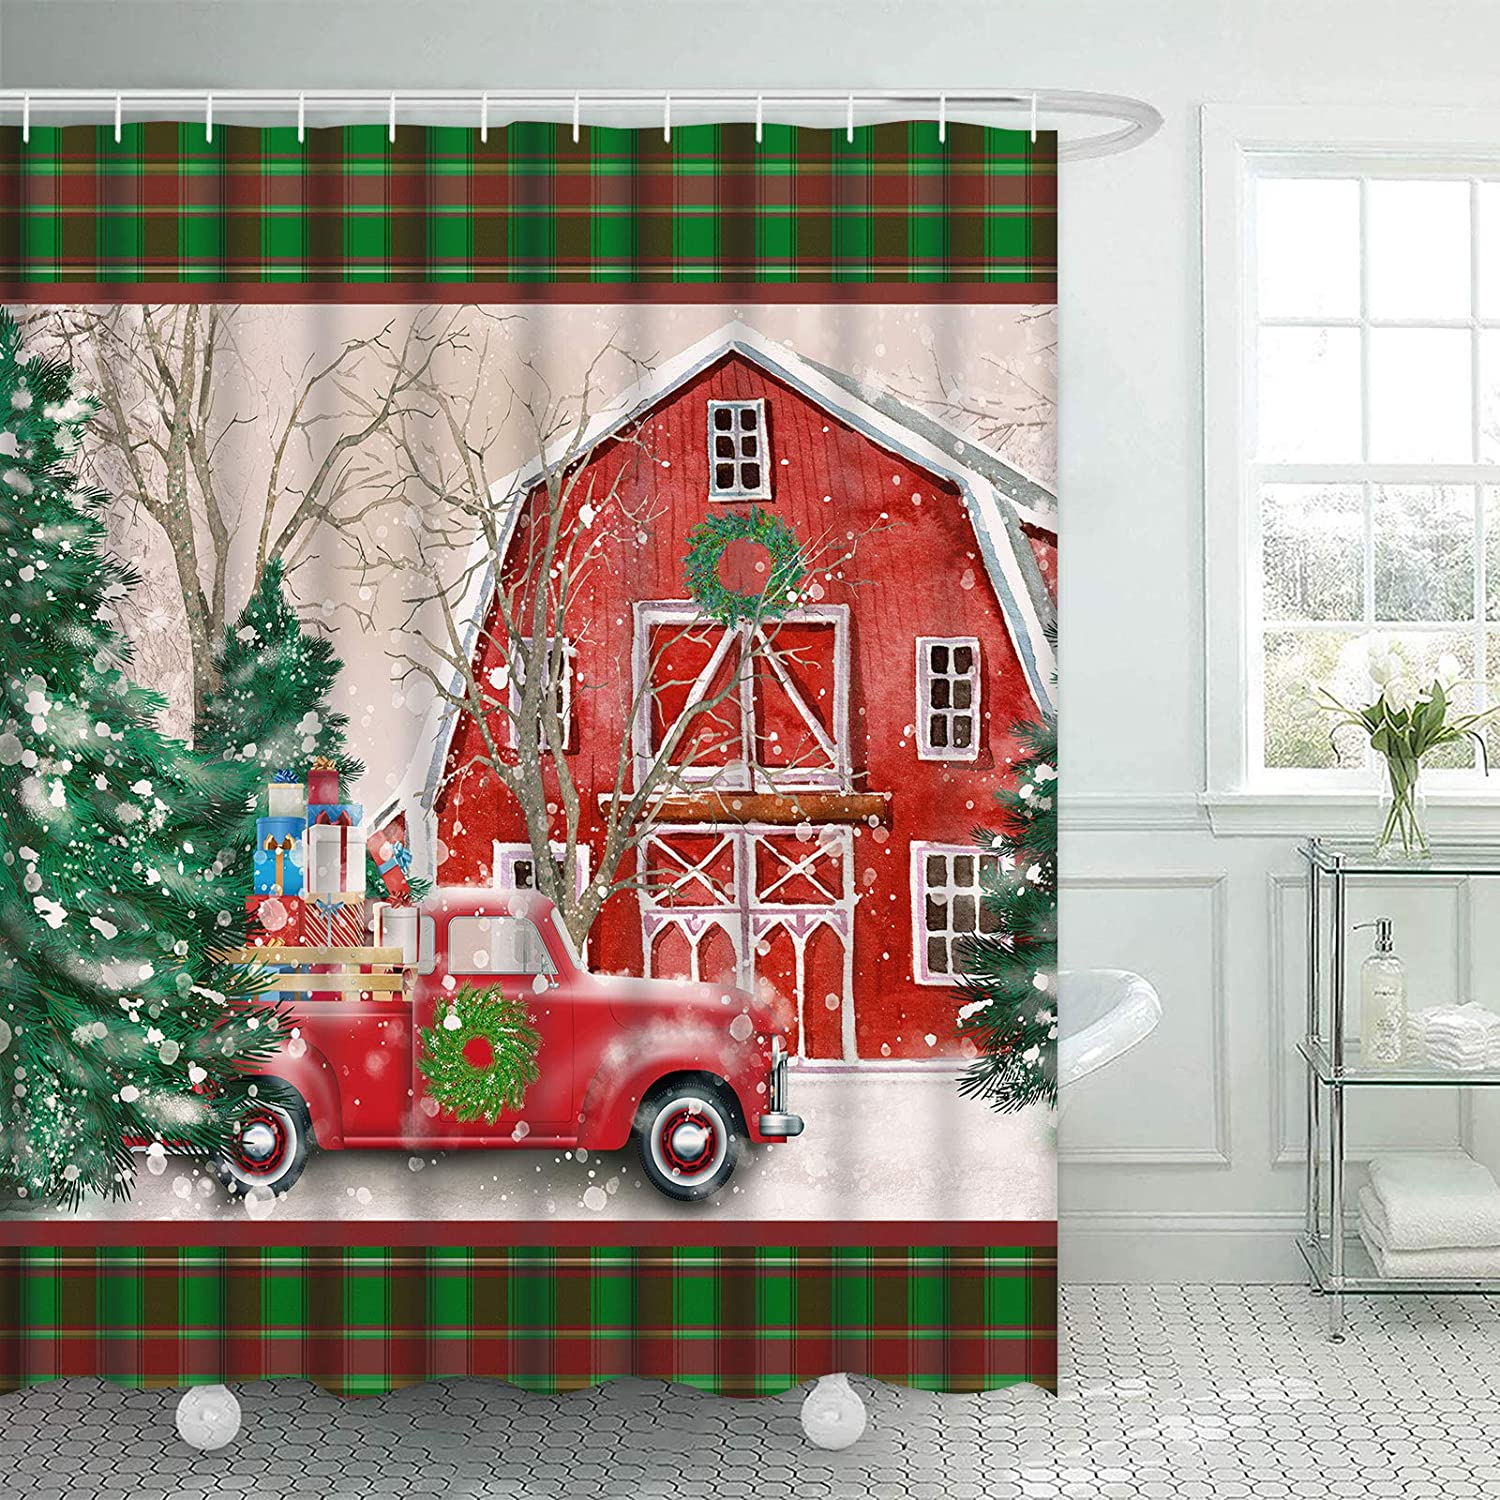 """TAMOC Vintage Red Truck Shower Curtain, Red Barn Snow Shower Curtain with 12 Hooks, Christmas Xmas Bath Curtains, Waterproof Fabric Christmas Tree Shower Curtain for Bathroom, 69"""" W x 70"""" L"""